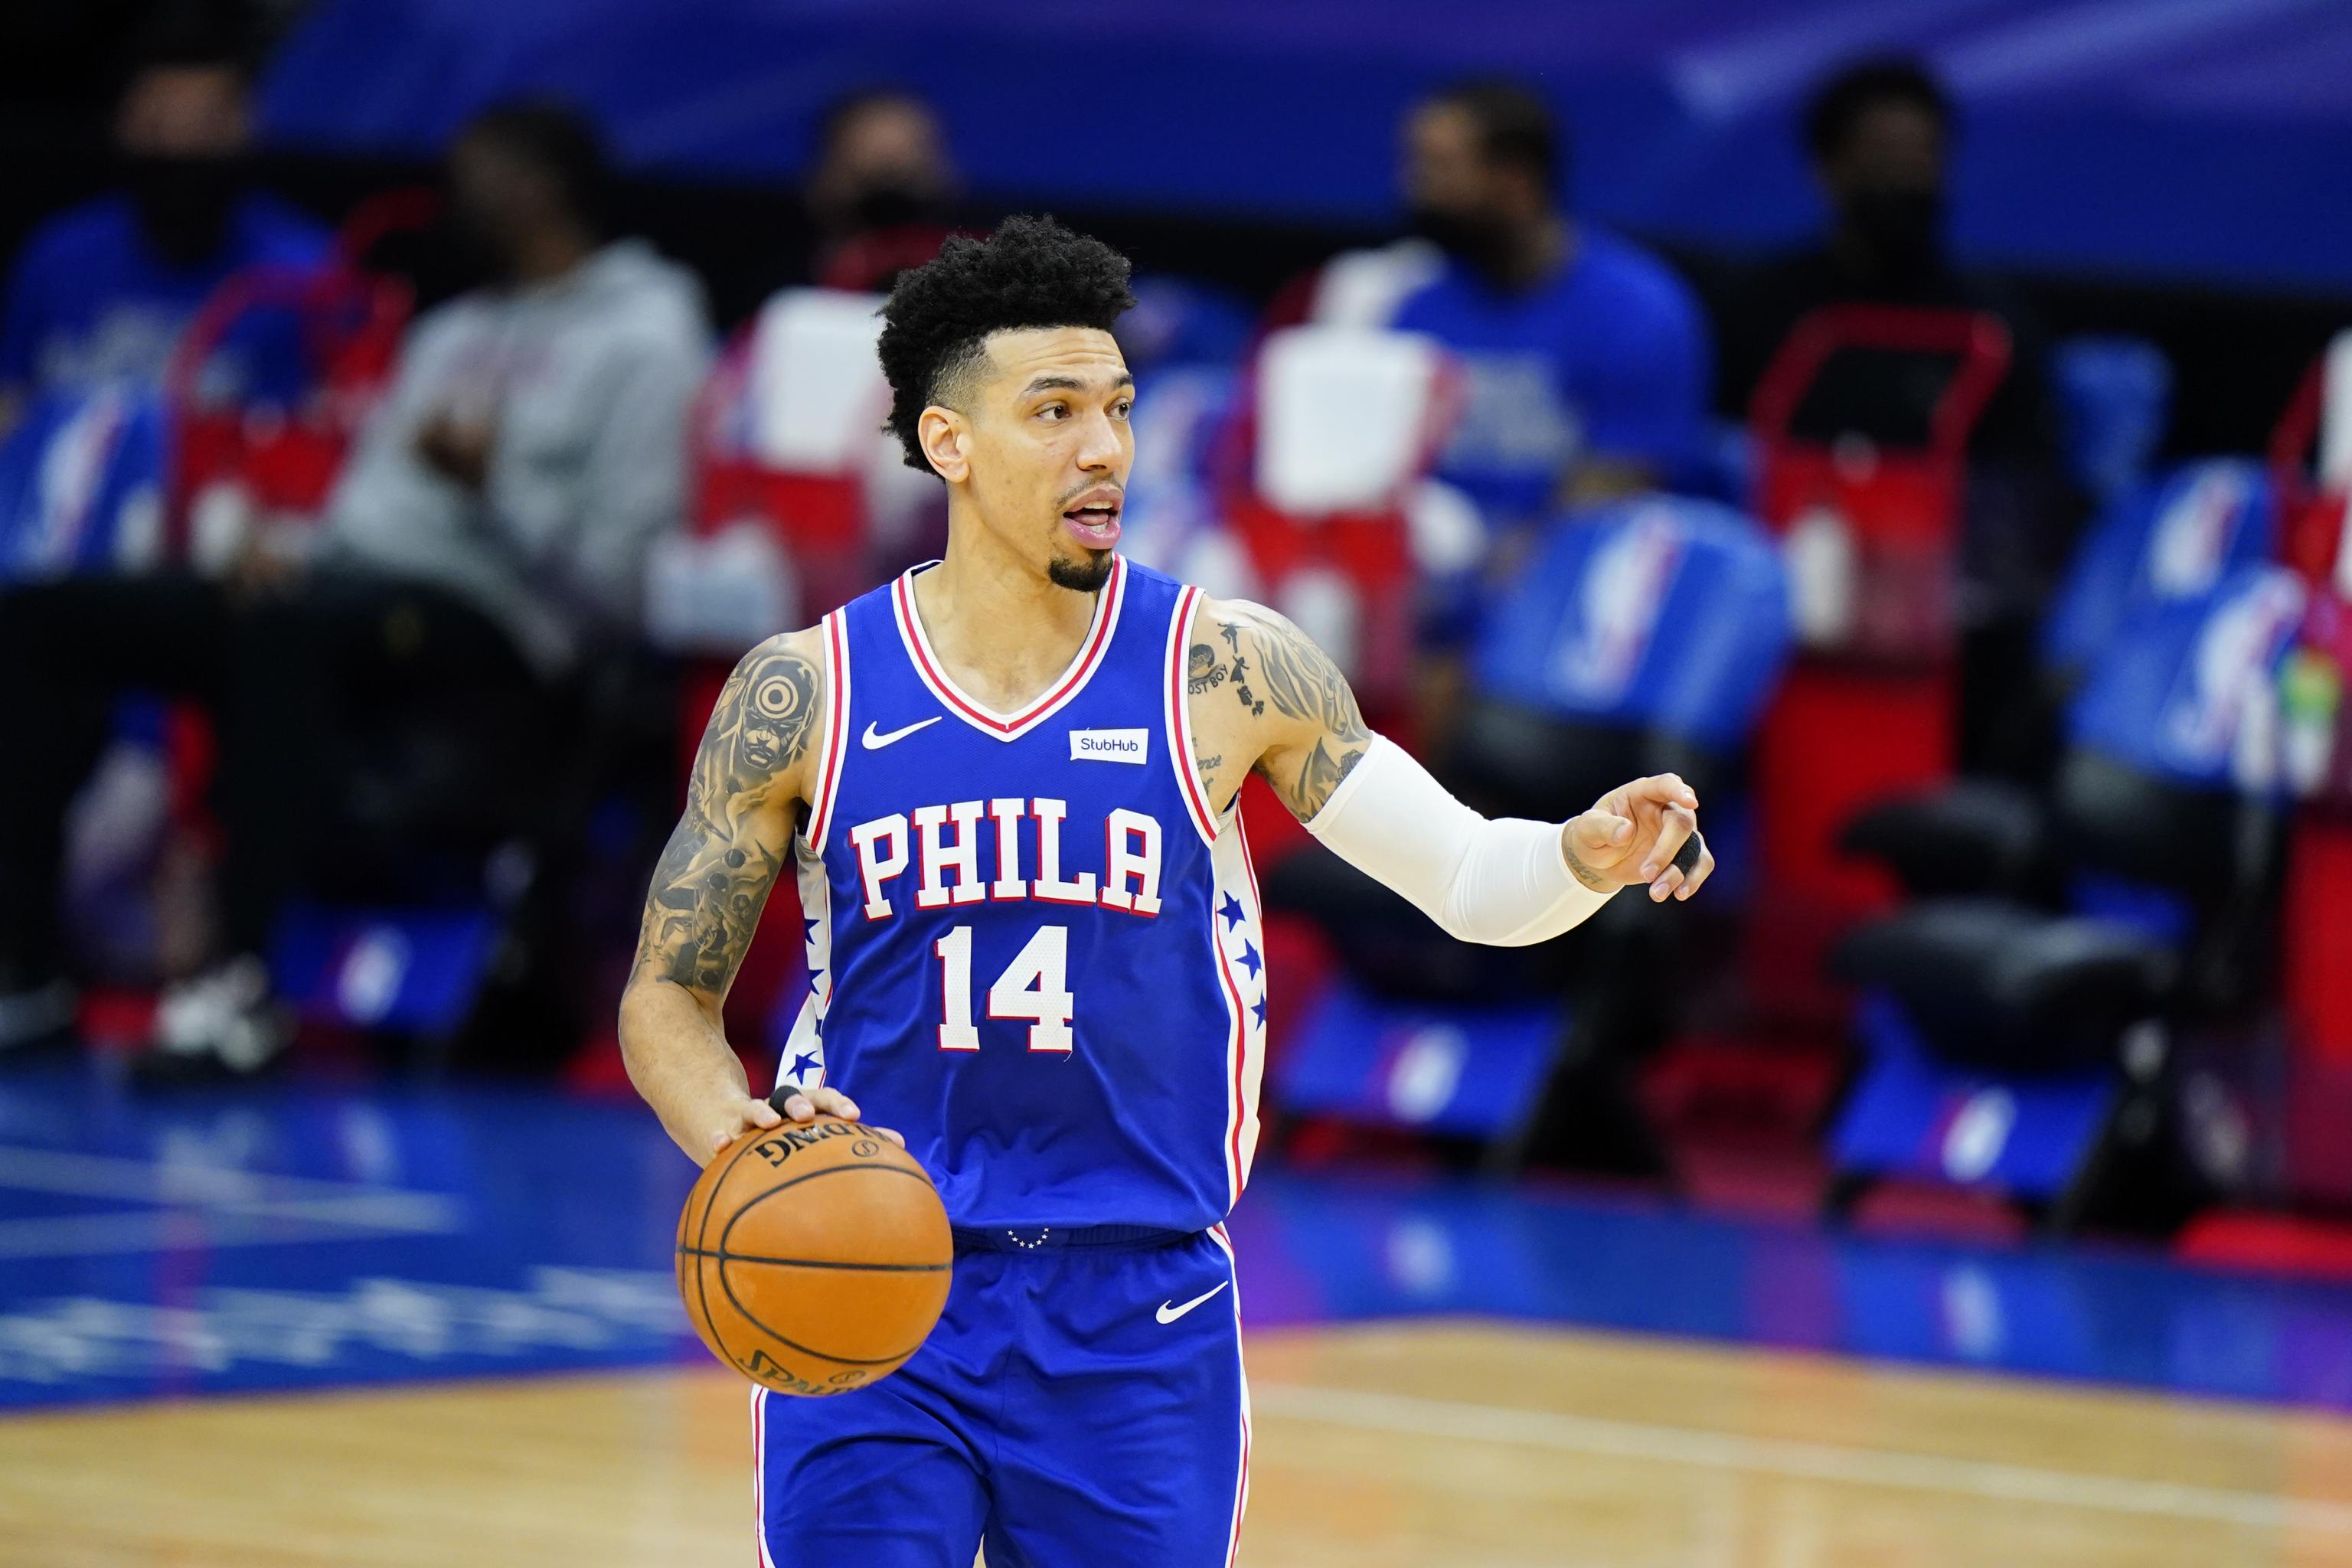 Warriors Trade Rumors: 76ers' Danny Green Targeted Ahead of Deadline |  Bleacher Report | Latest News, Videos and Highlights